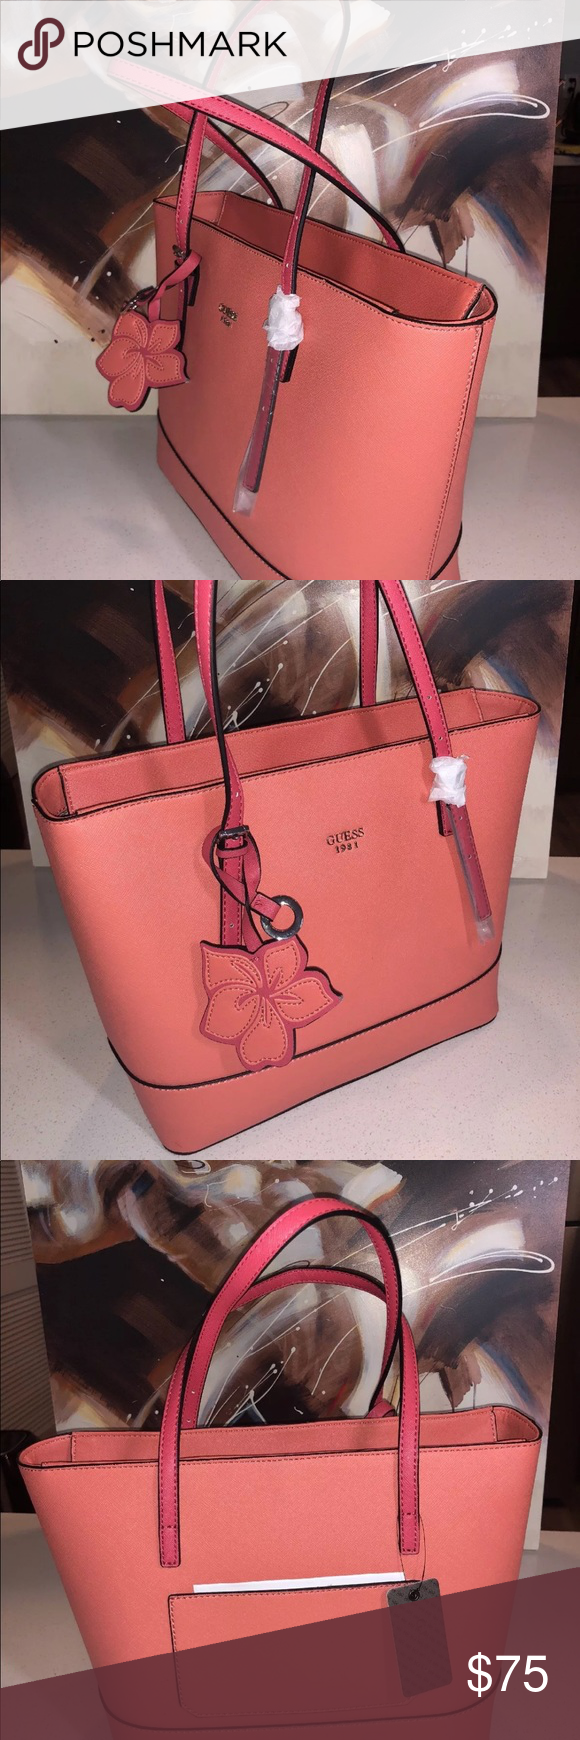 Guess pink clear pink tote bag